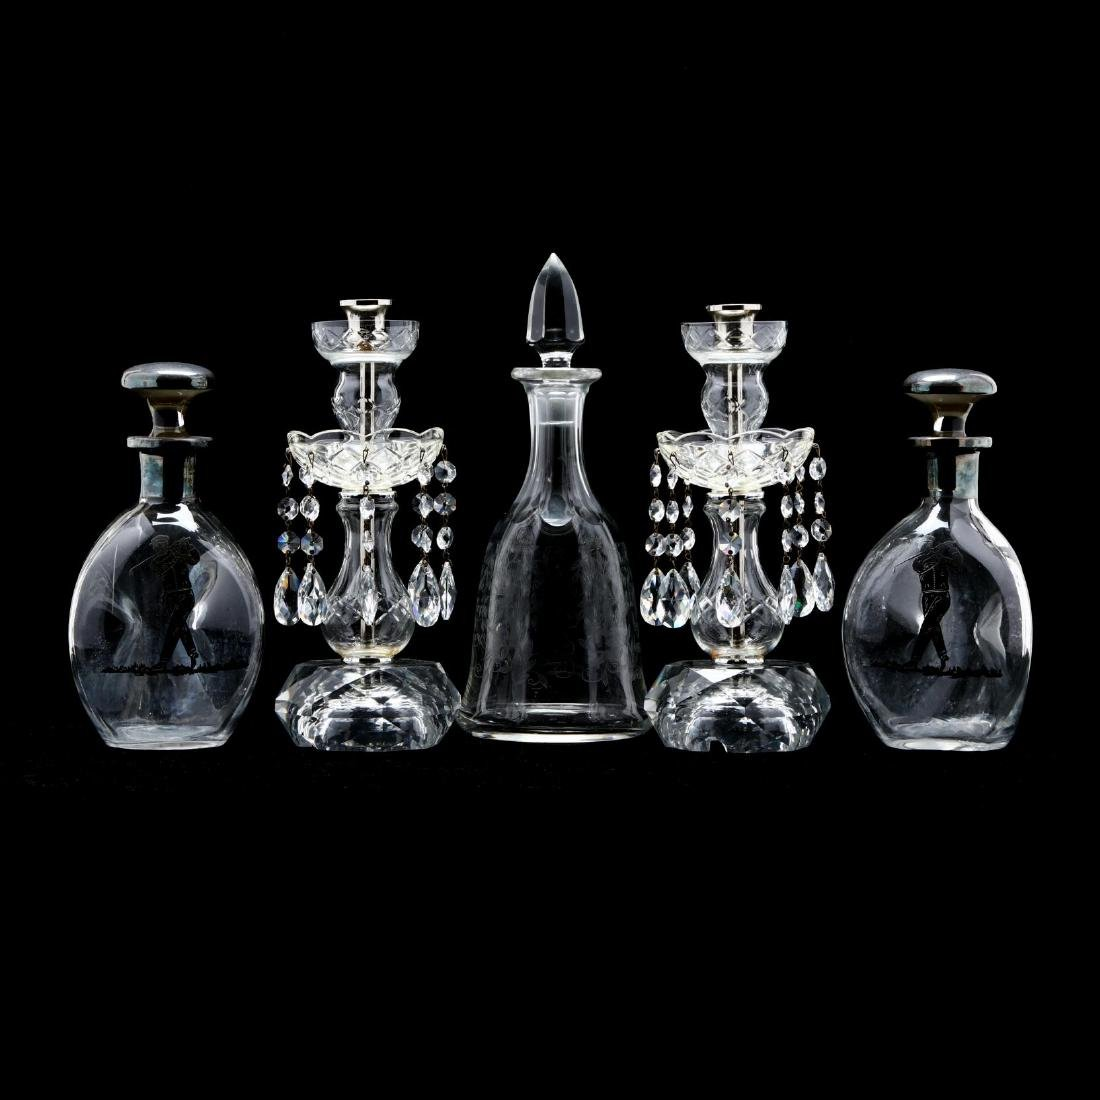 Group of Vintage Glass